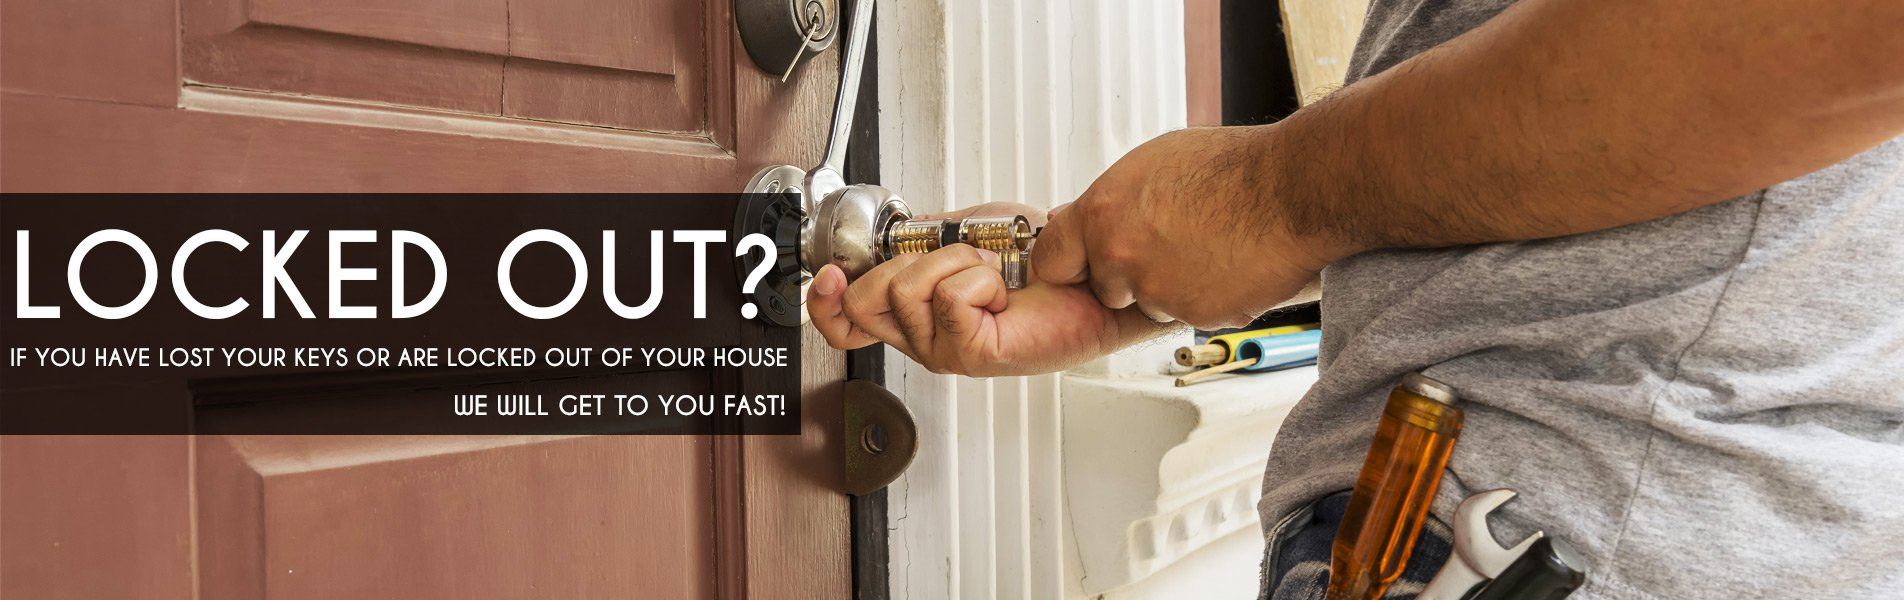 Gloucester City NJ Locksmith Store Gloucester City, NJ 856-376-0661